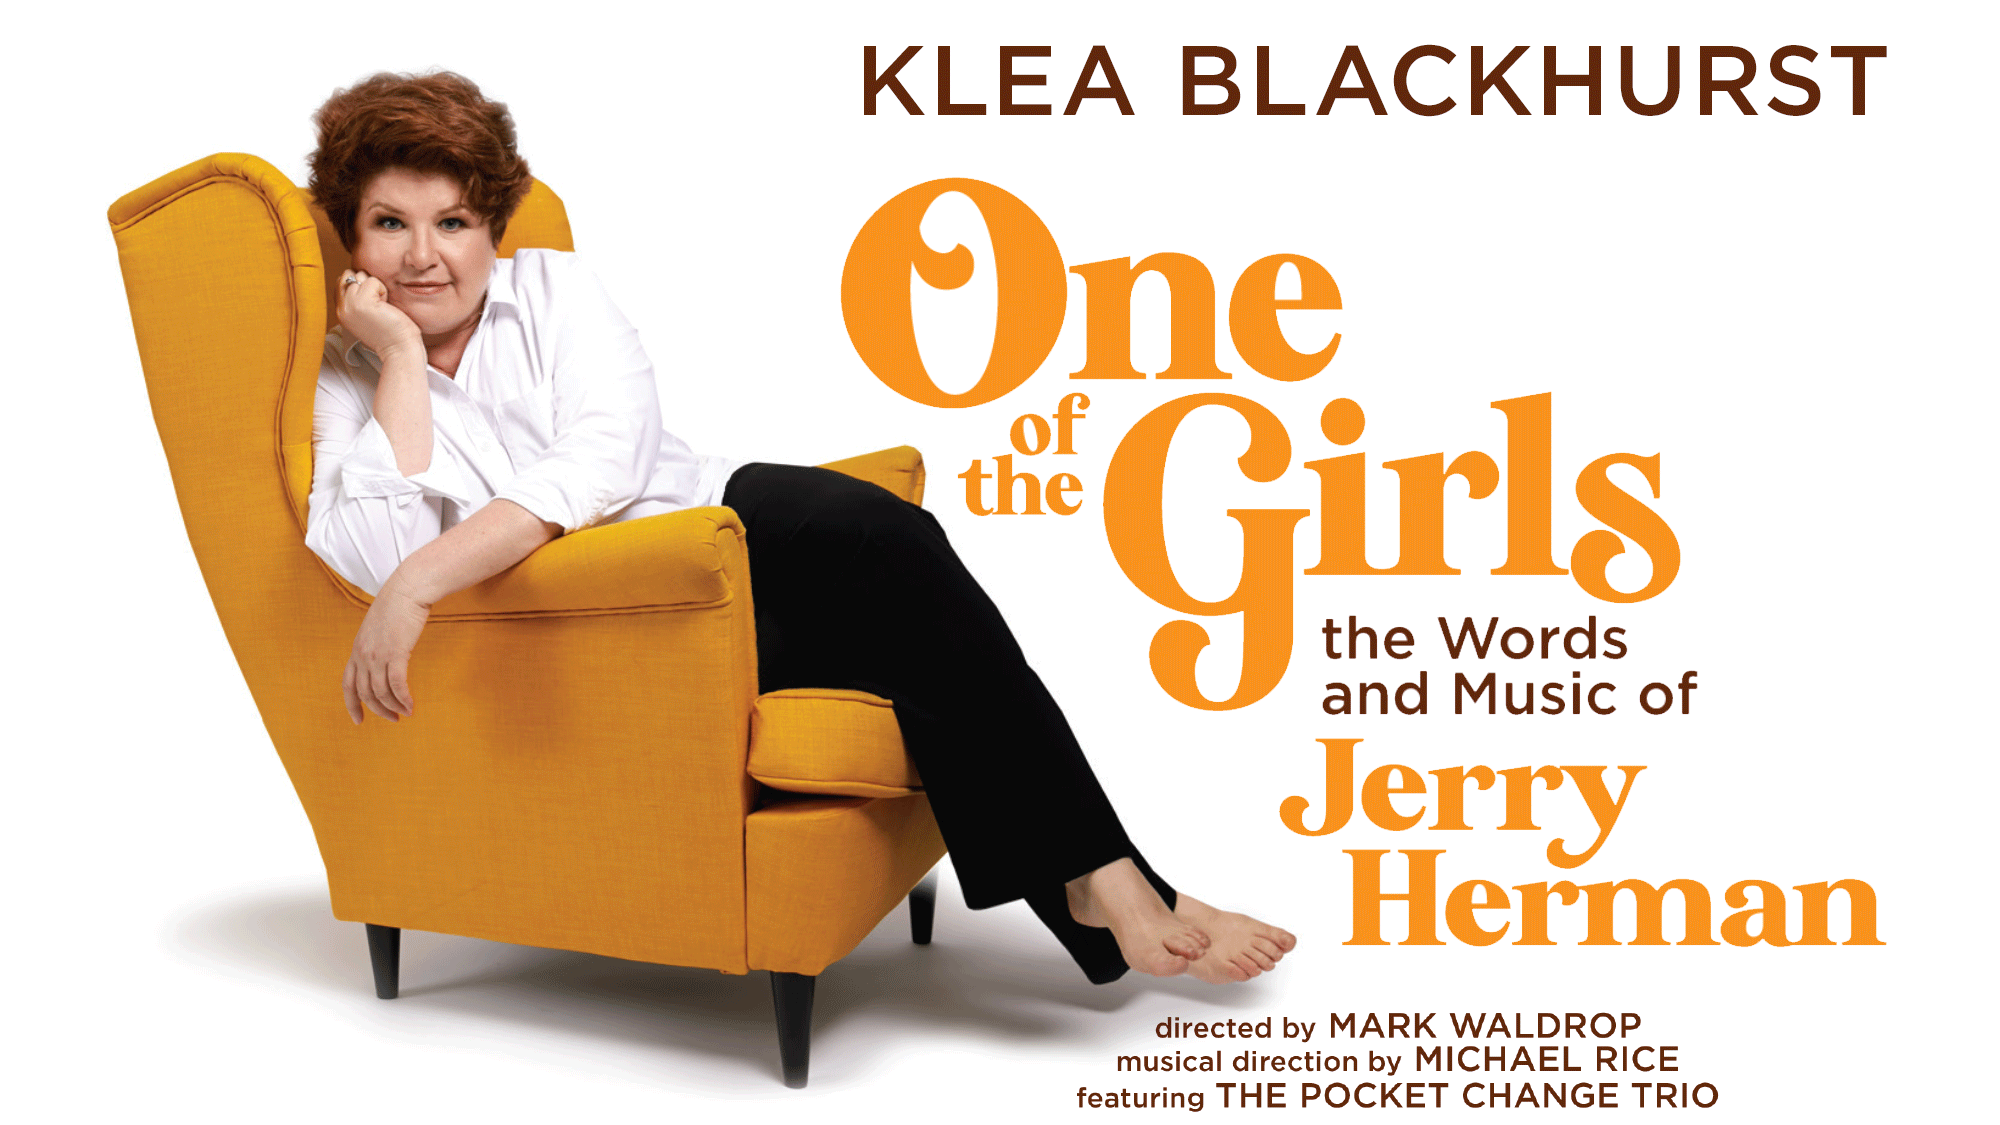 Klea Blackhurst: The Words and Music of Jerry Herman